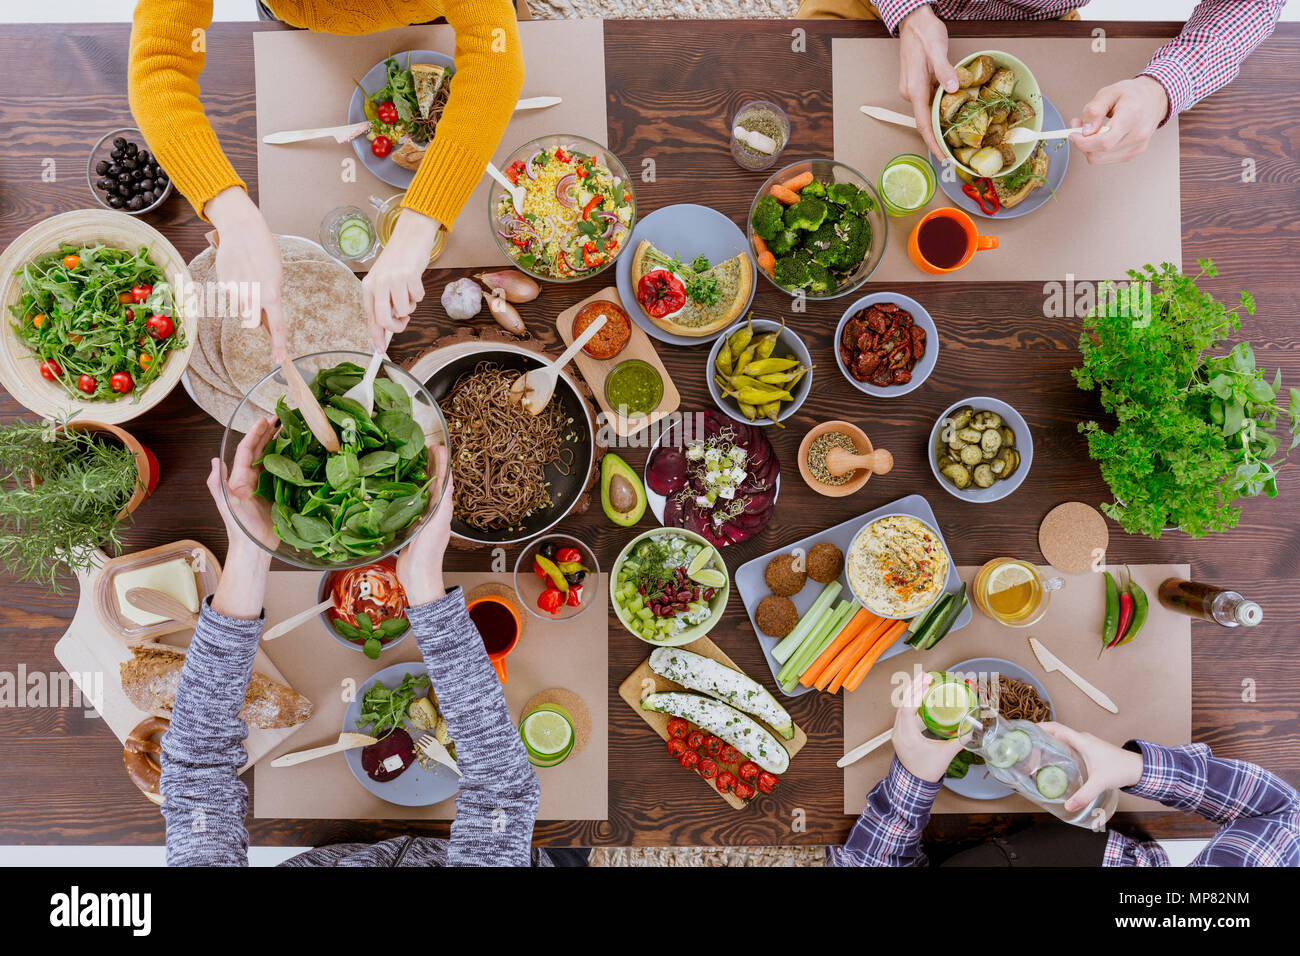 Various vegetarian food lying on rustic wooden table - Stock Image